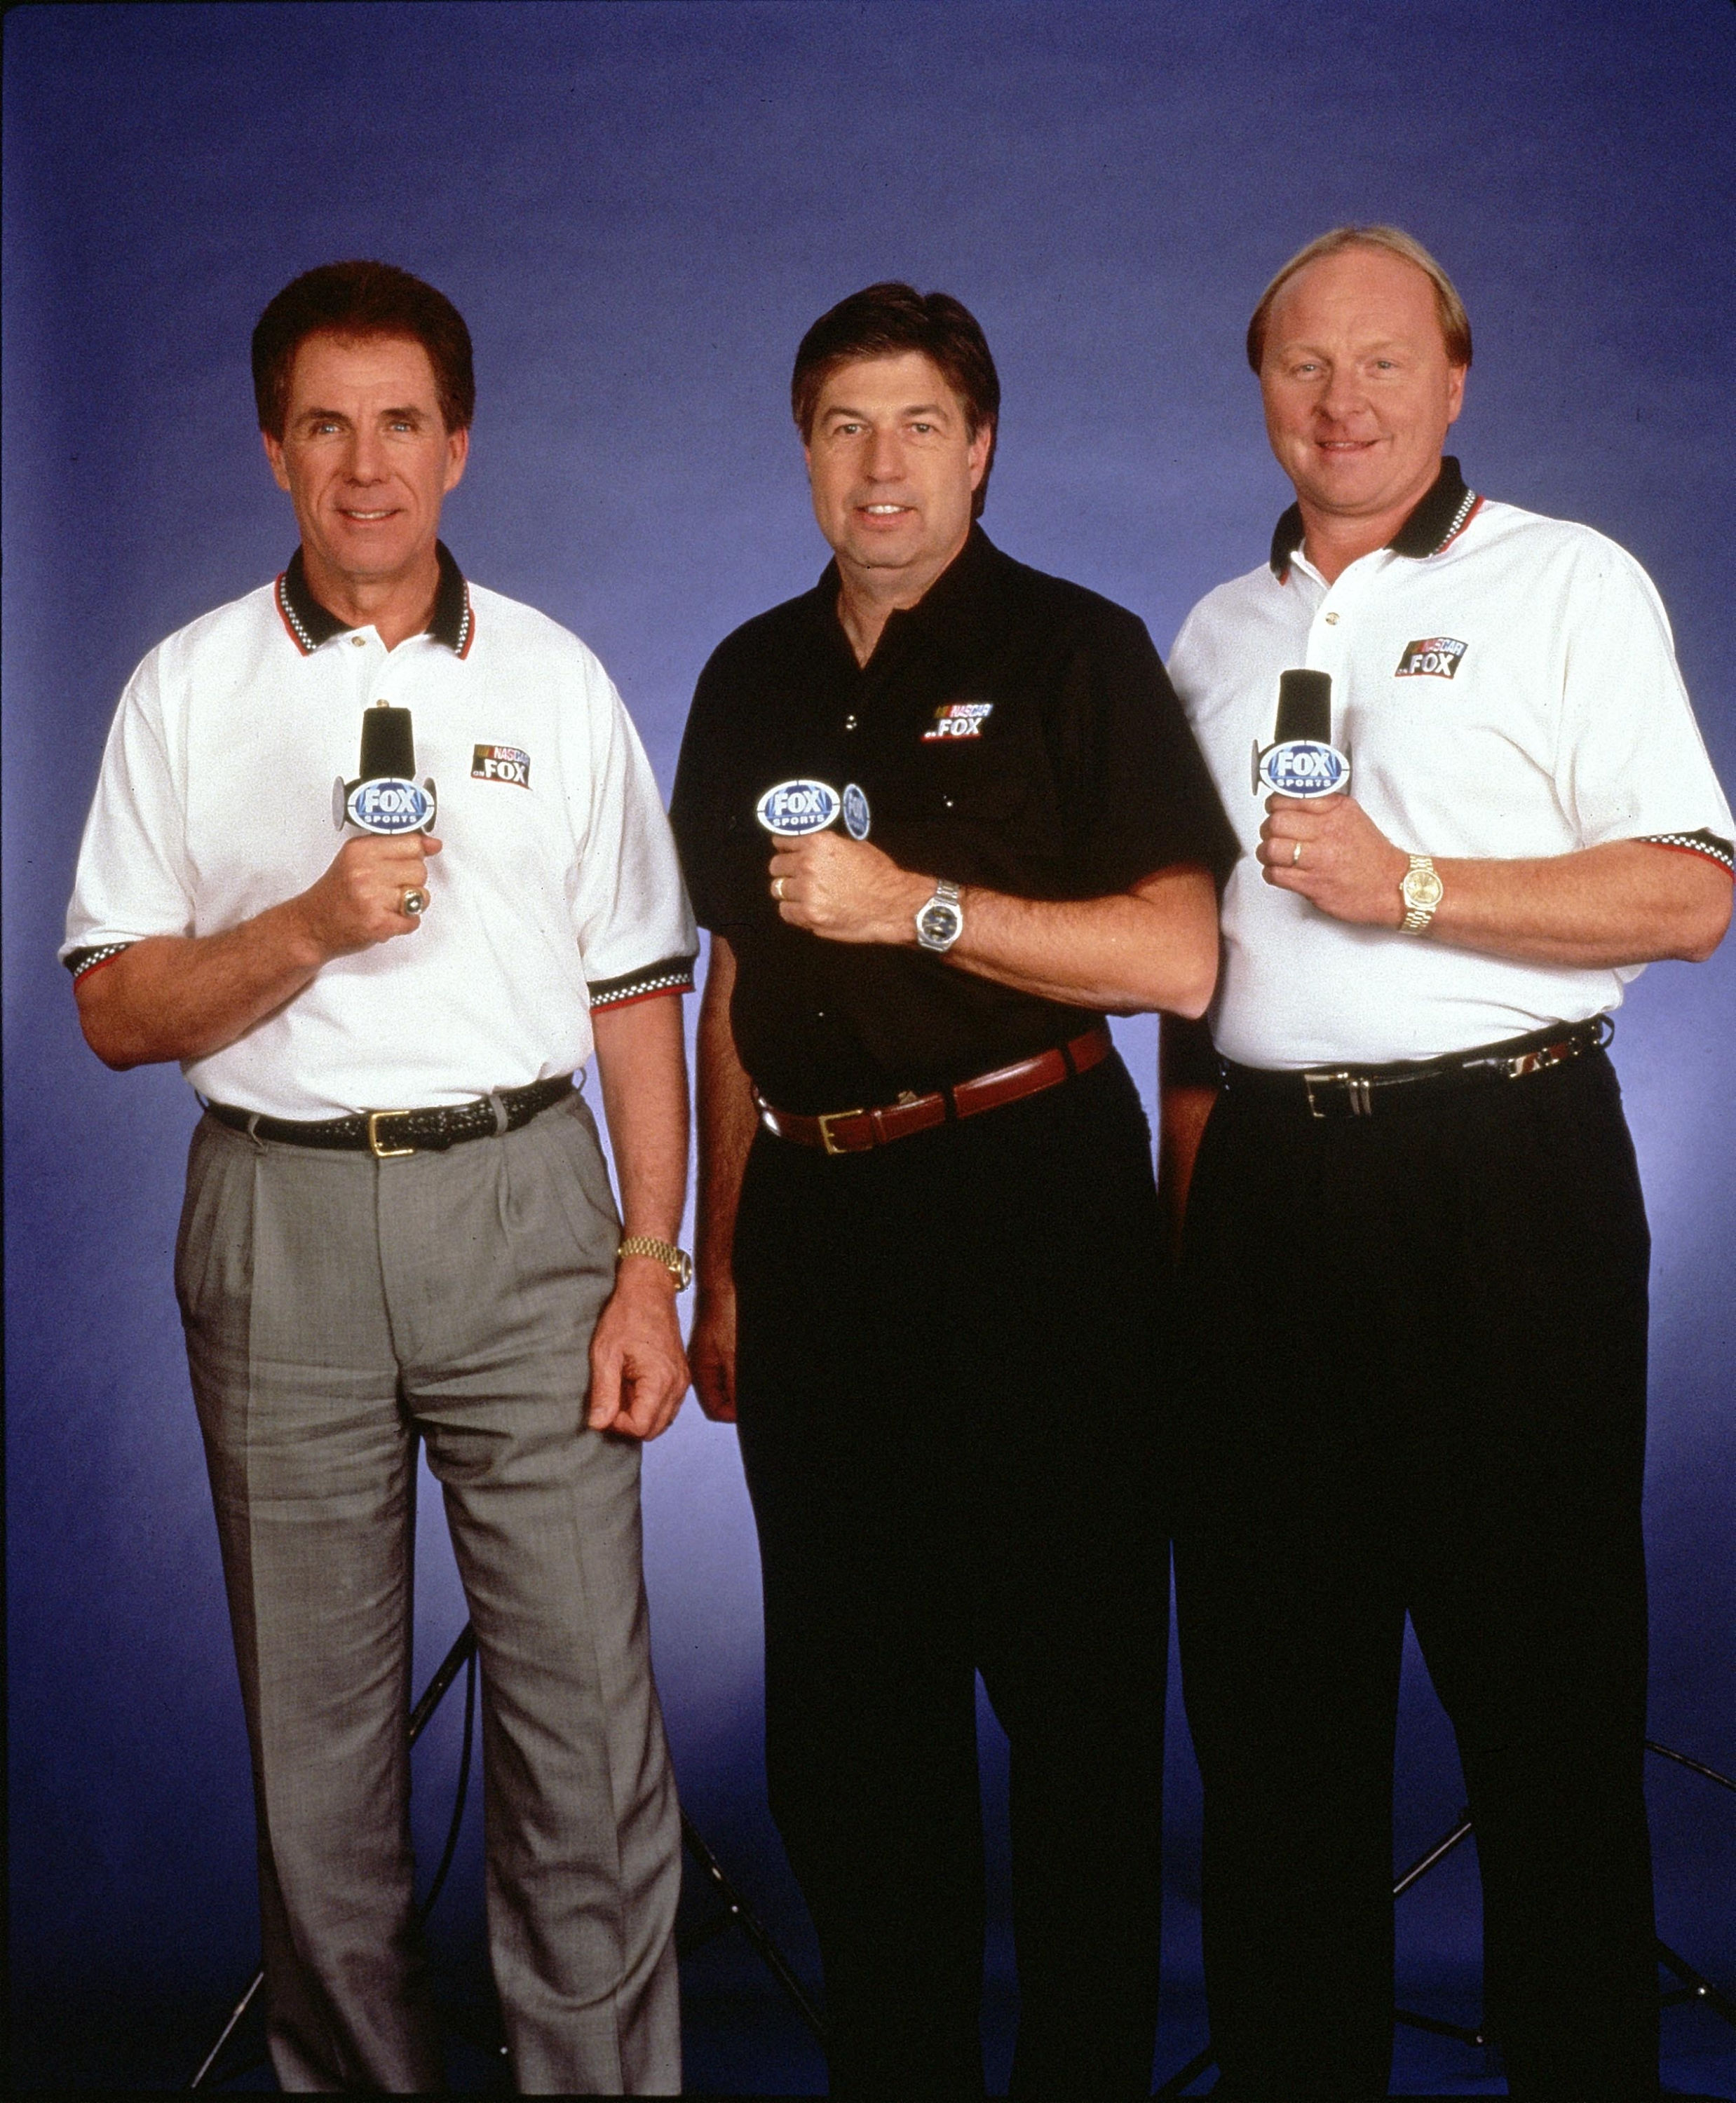 NASCAR Hall of Fame driver and FOX NASCAR analyst Darrell